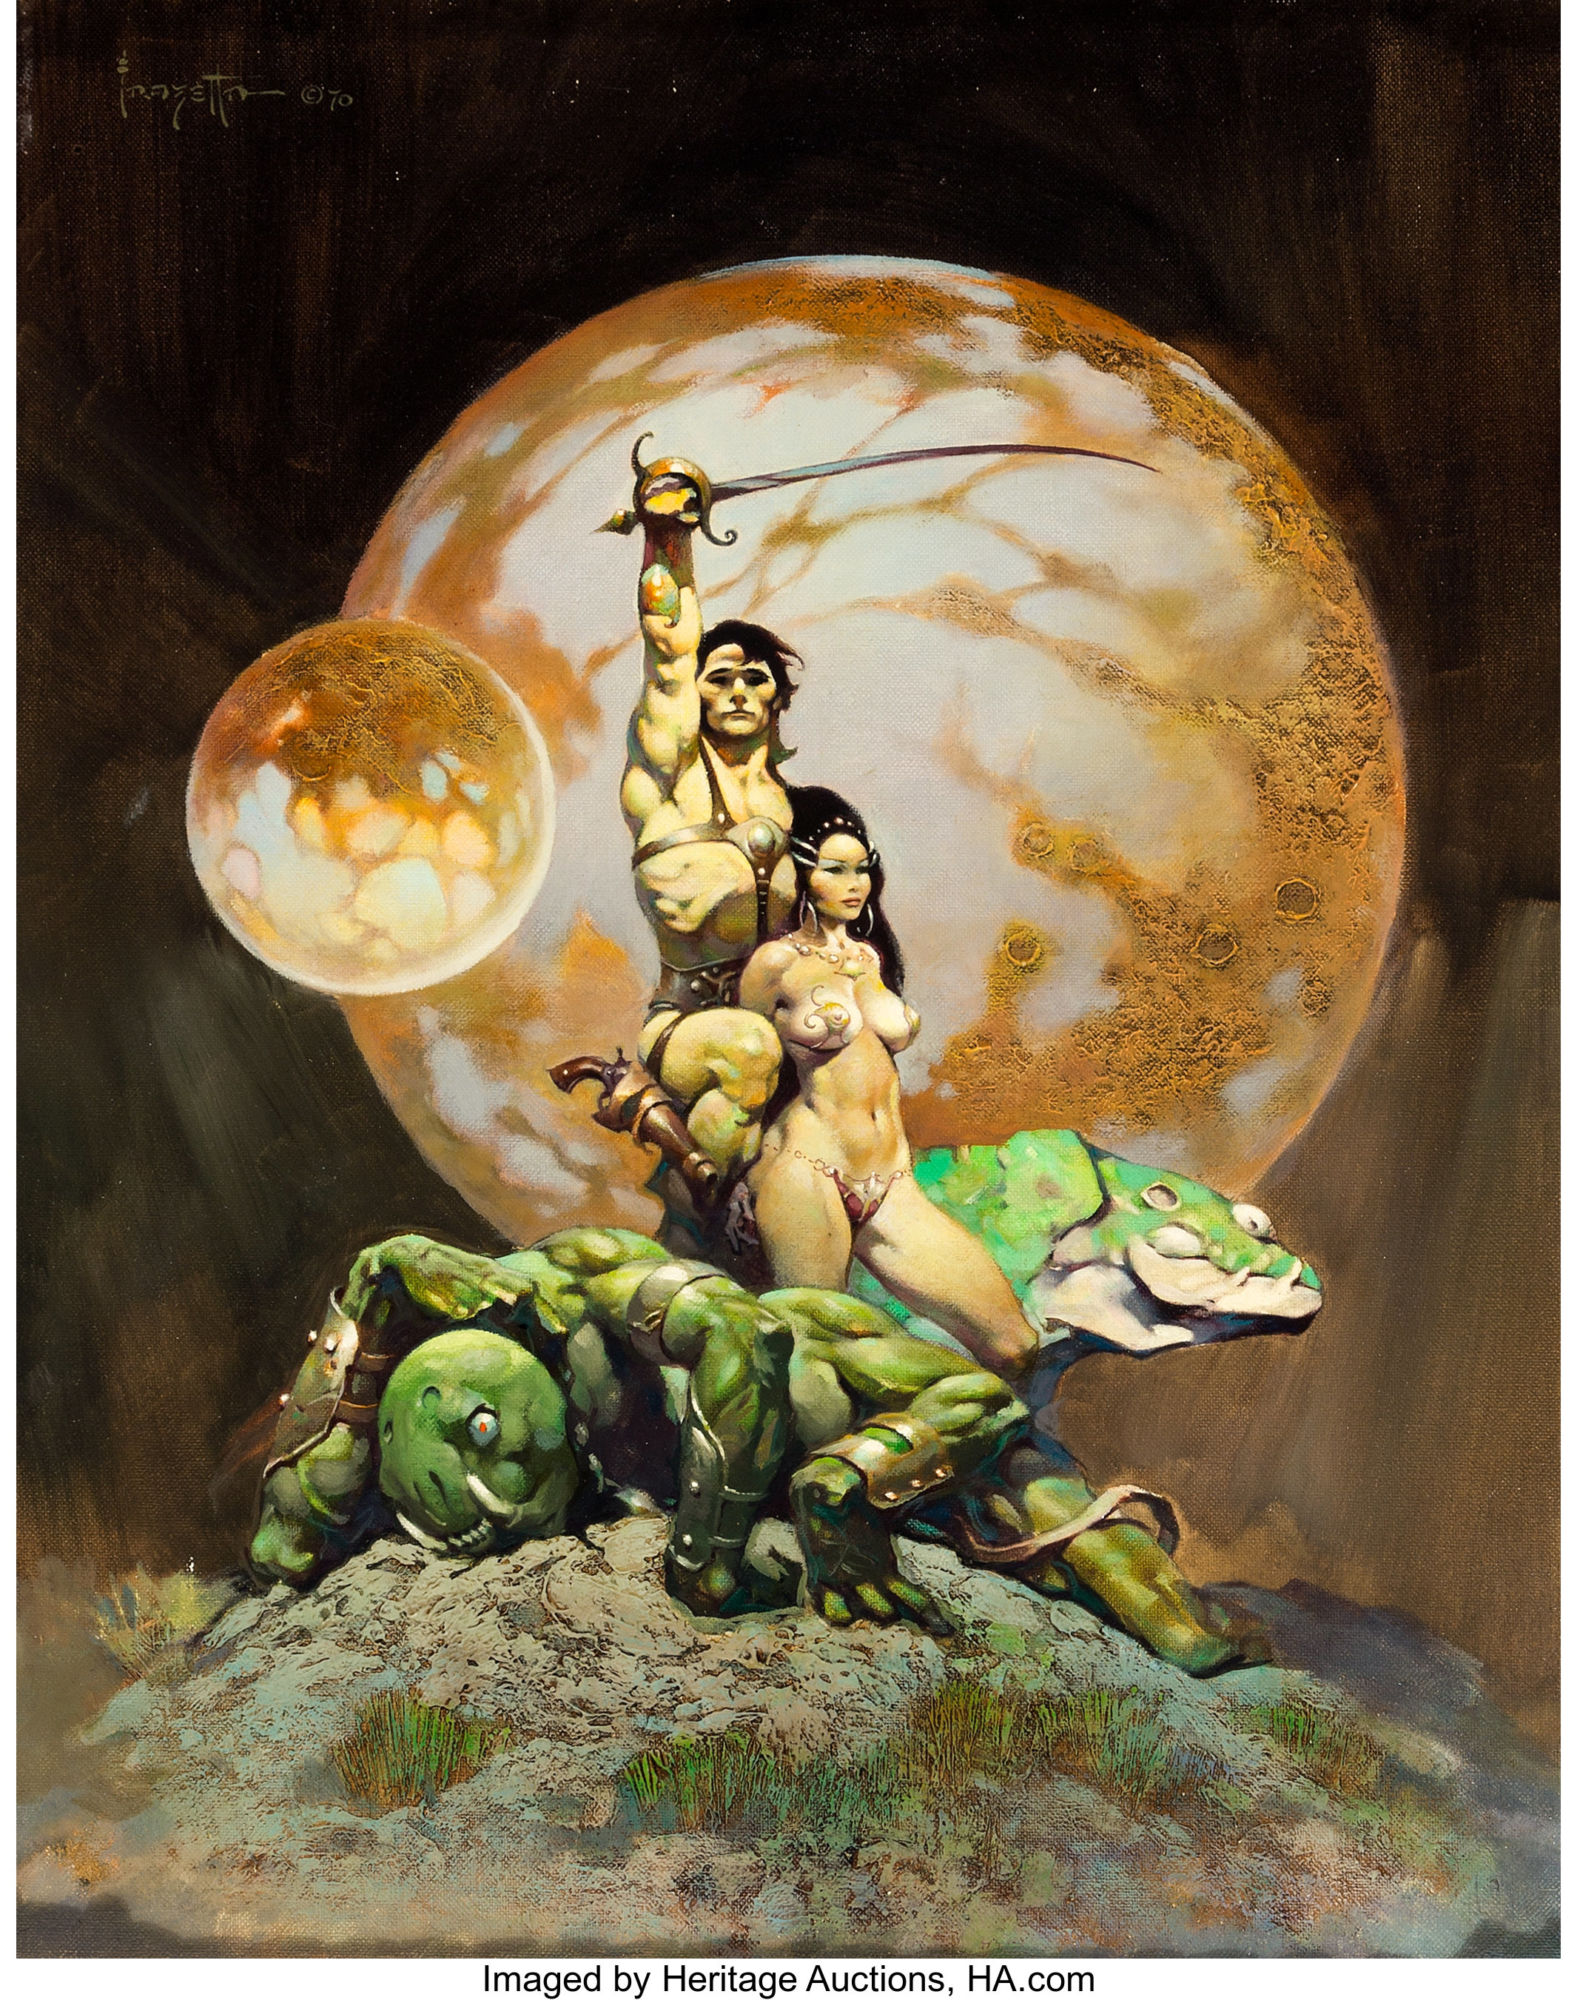 Frank Frazetta's Princess Of Mars – Will It Hit A Million at Auction?